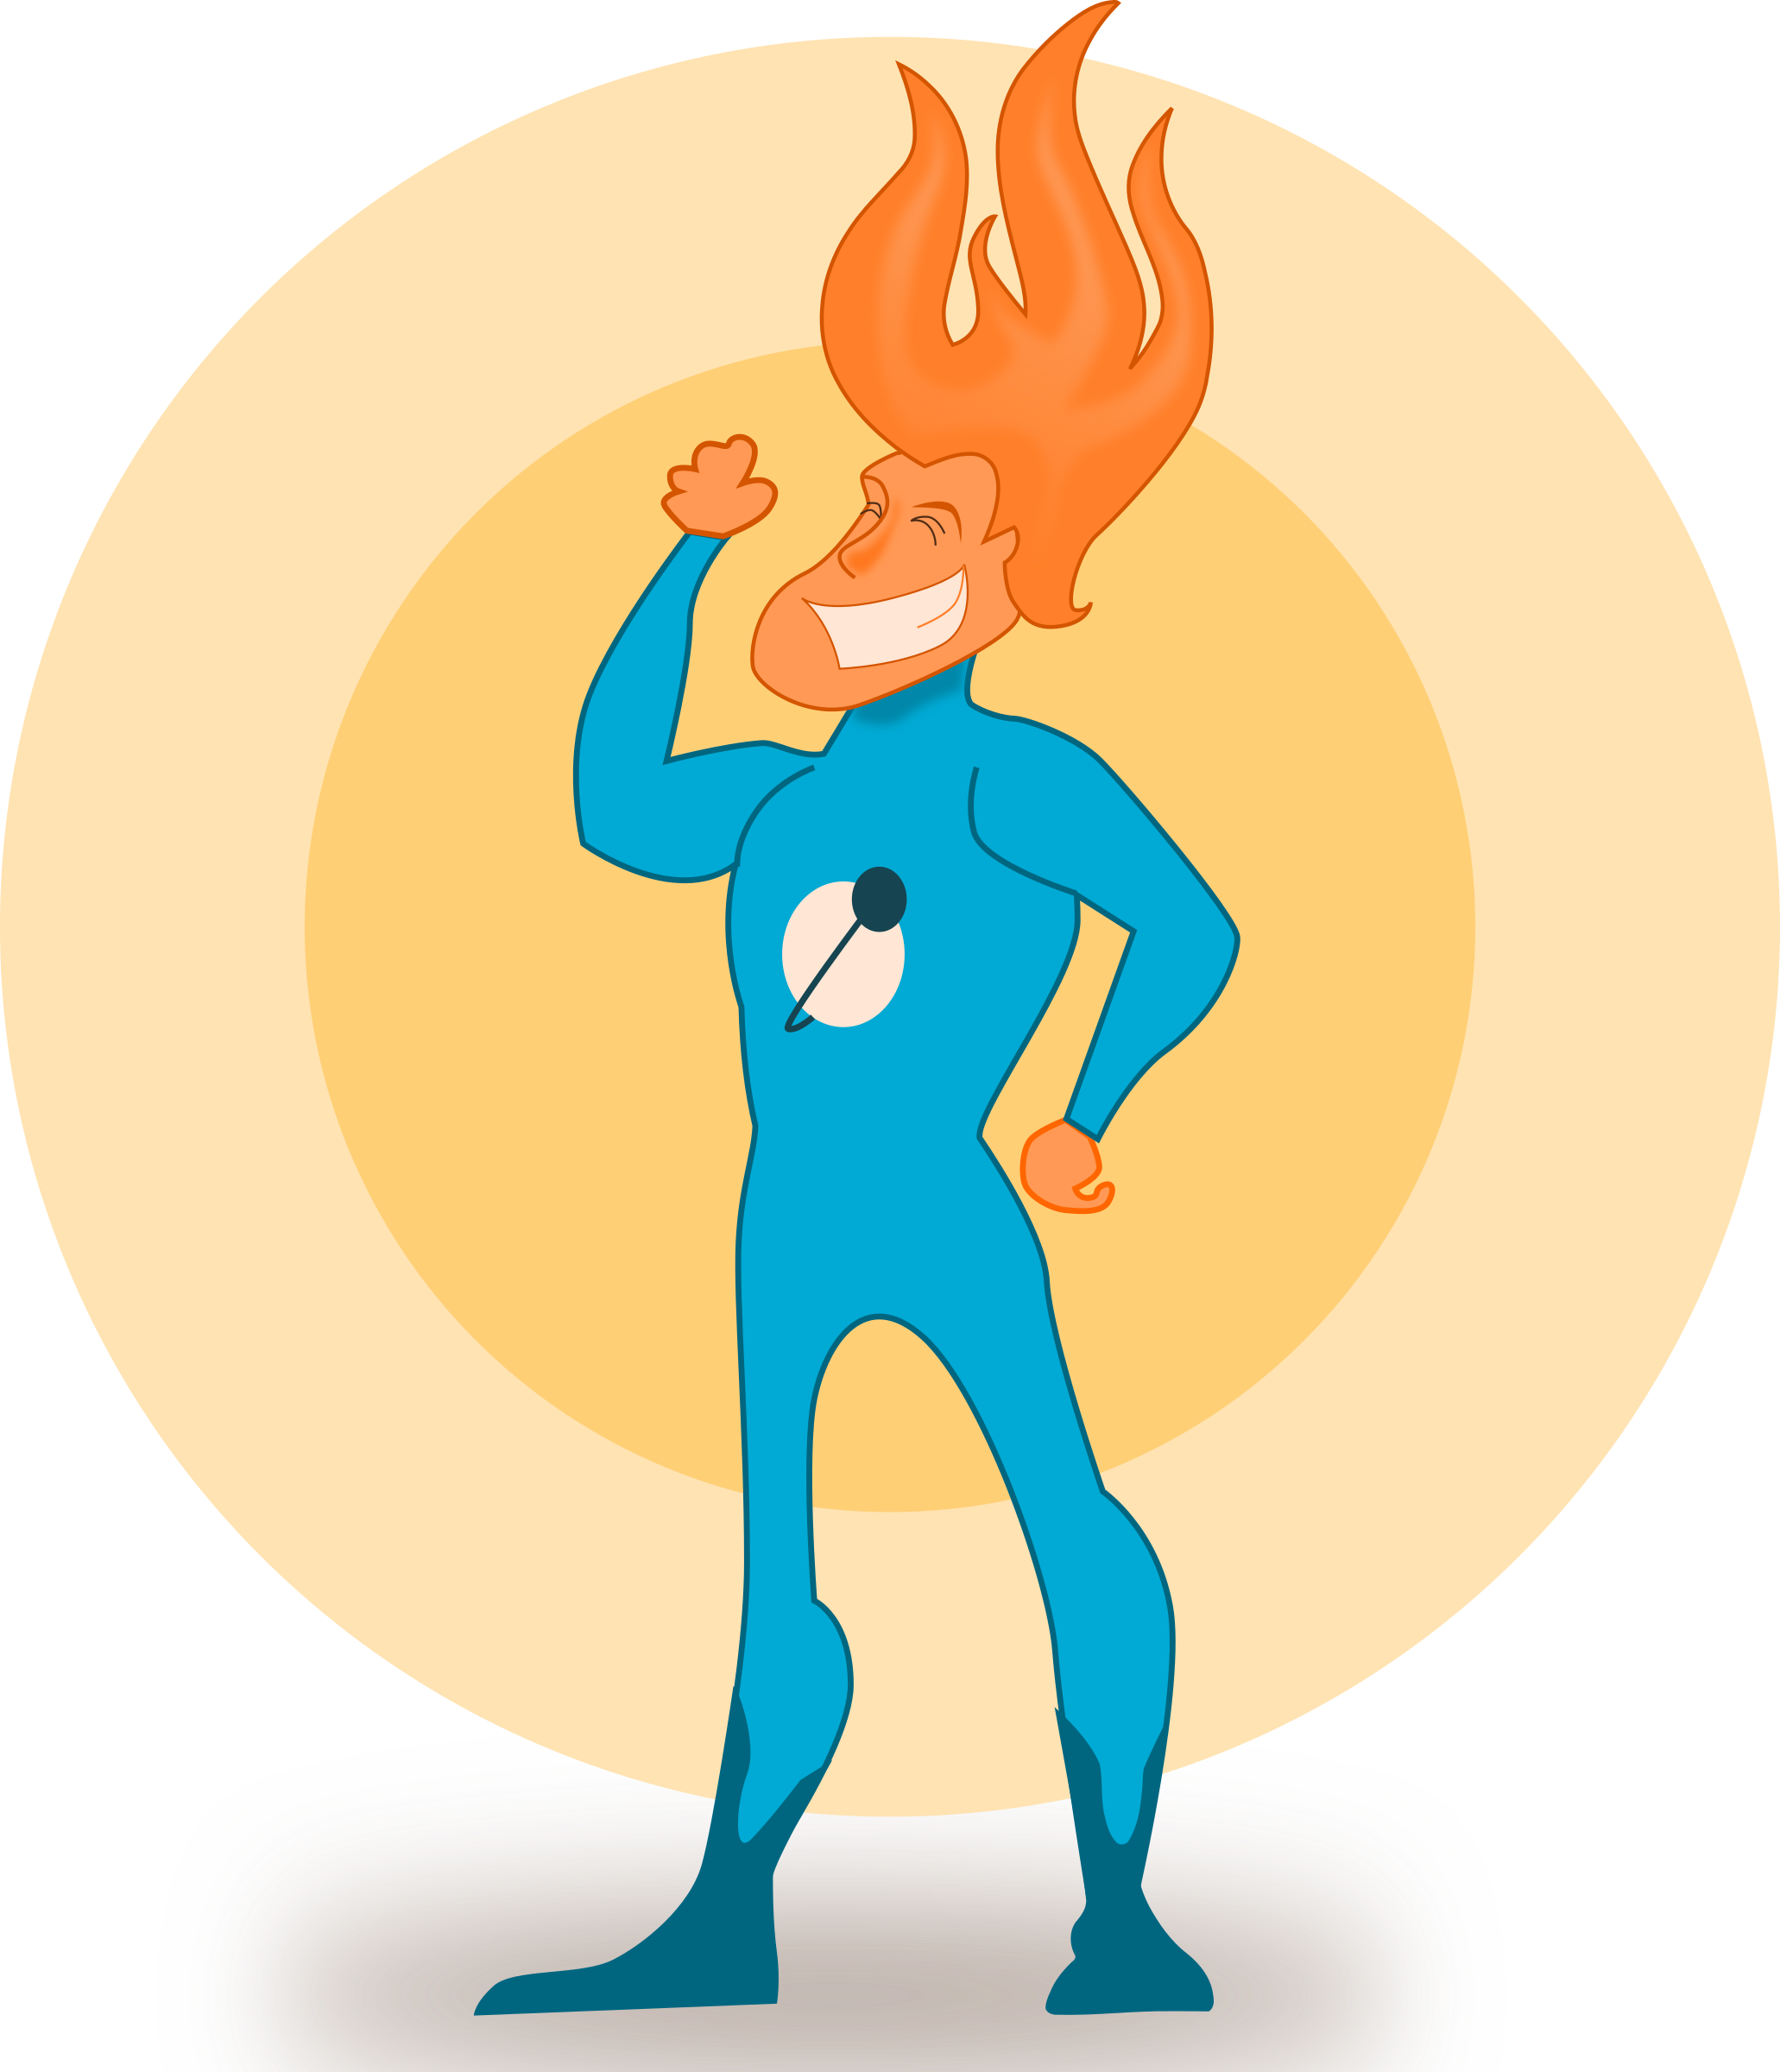 Super Hero - Flame by kablam